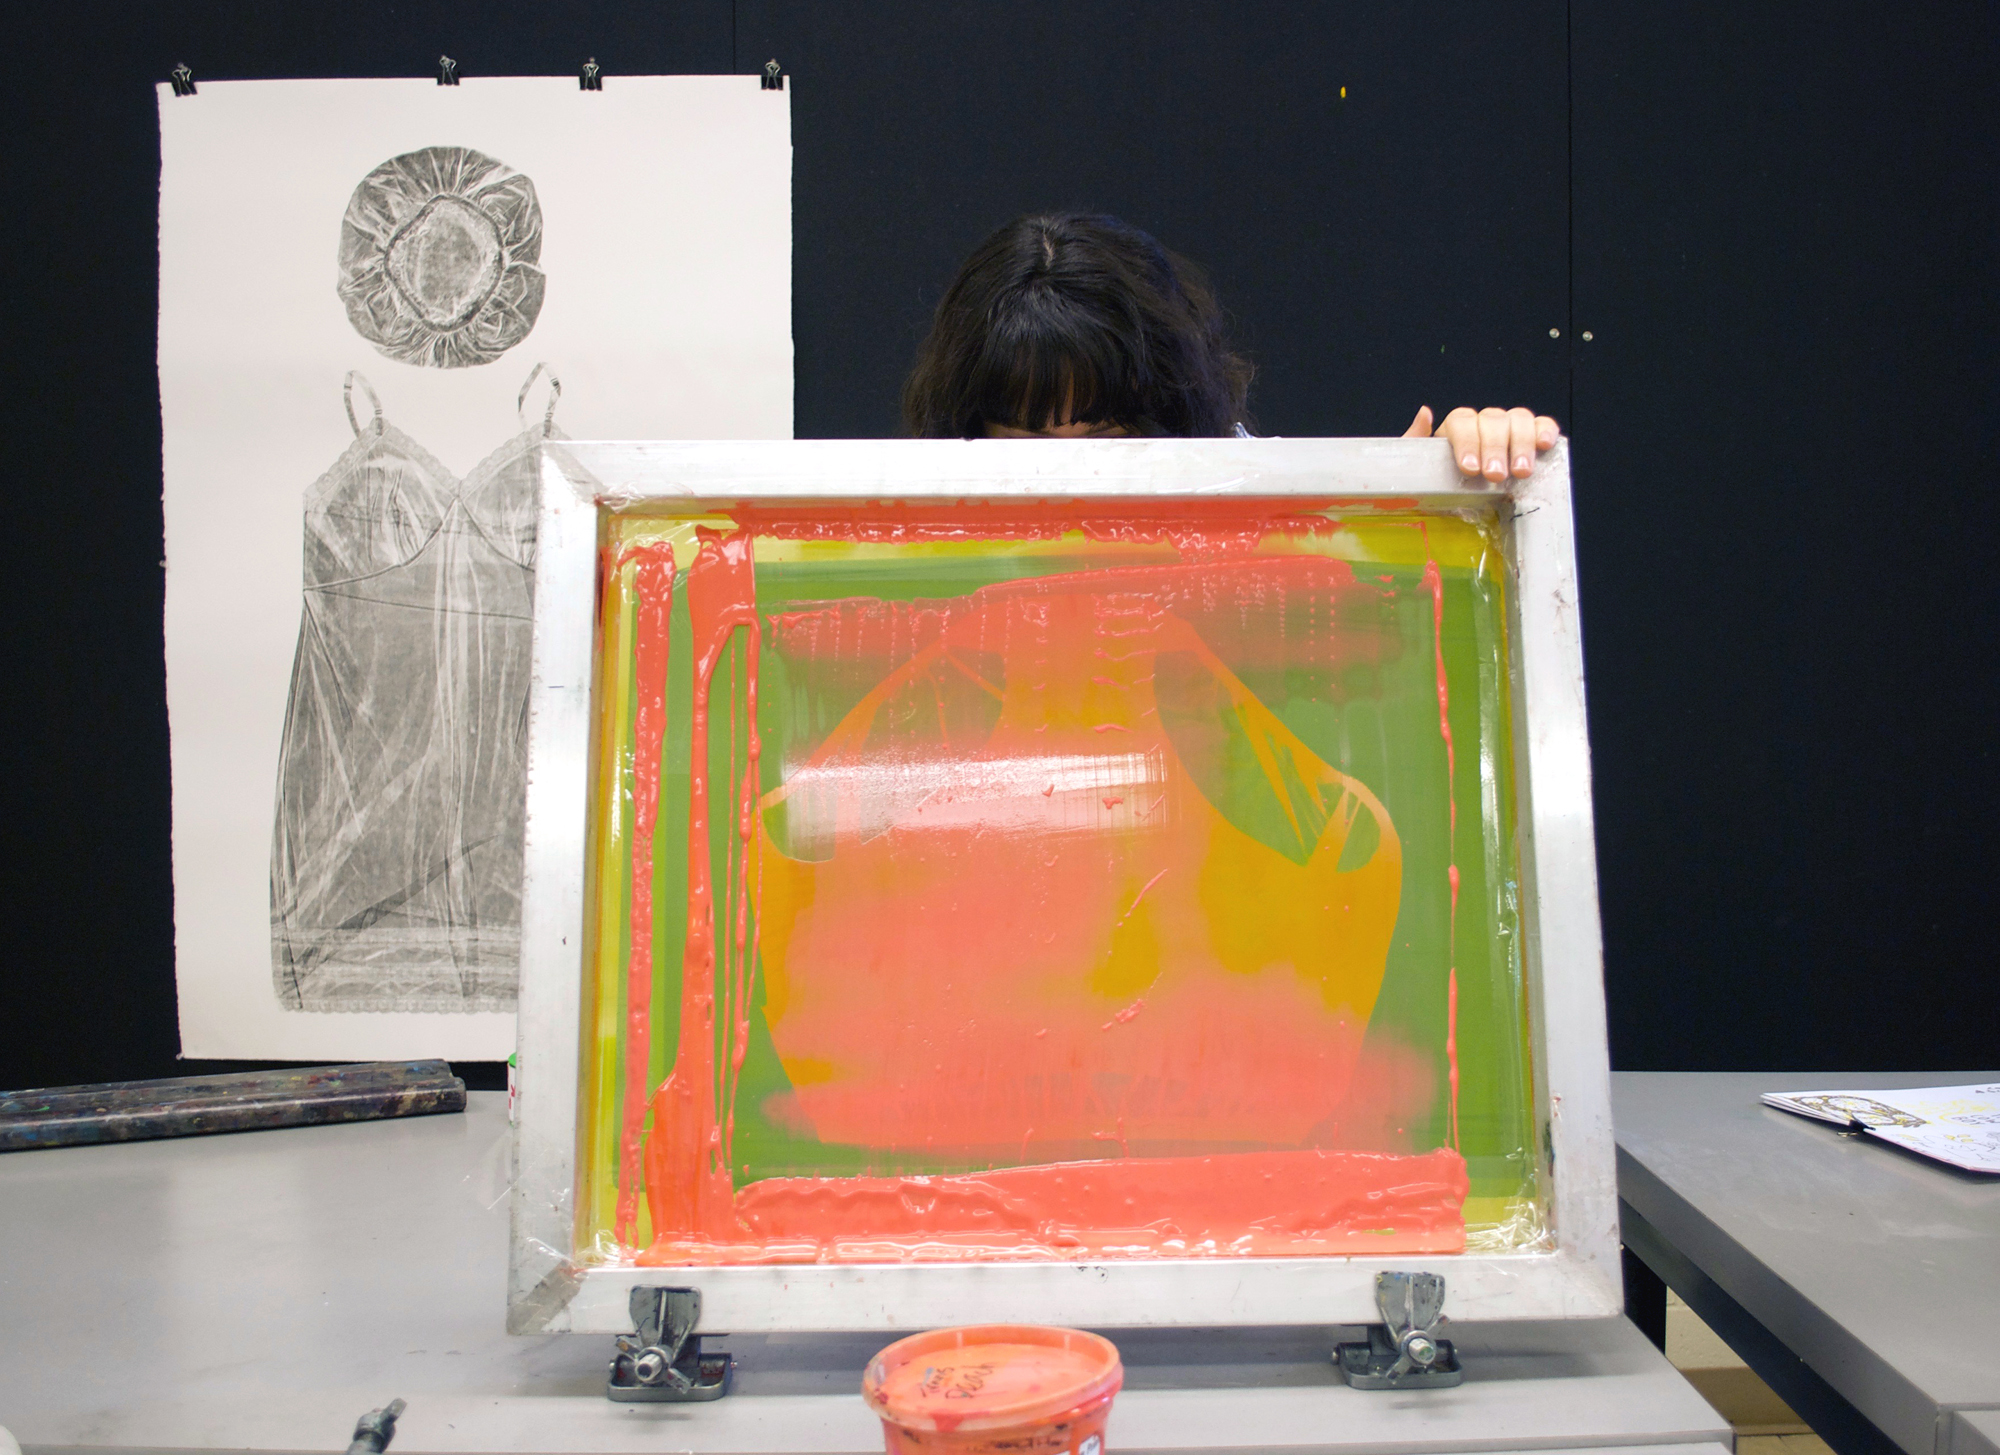 Image: Guen Montgomery holds a screenprinting screen up, exposing the neon pink paint-covered screen to the camera. The top of her head is visible above the screen. Pinned behind her on a black corkboard is a gray collagraph print of a woman's shower cap and nightgown on white paper. Photo by Jessica Hammie.